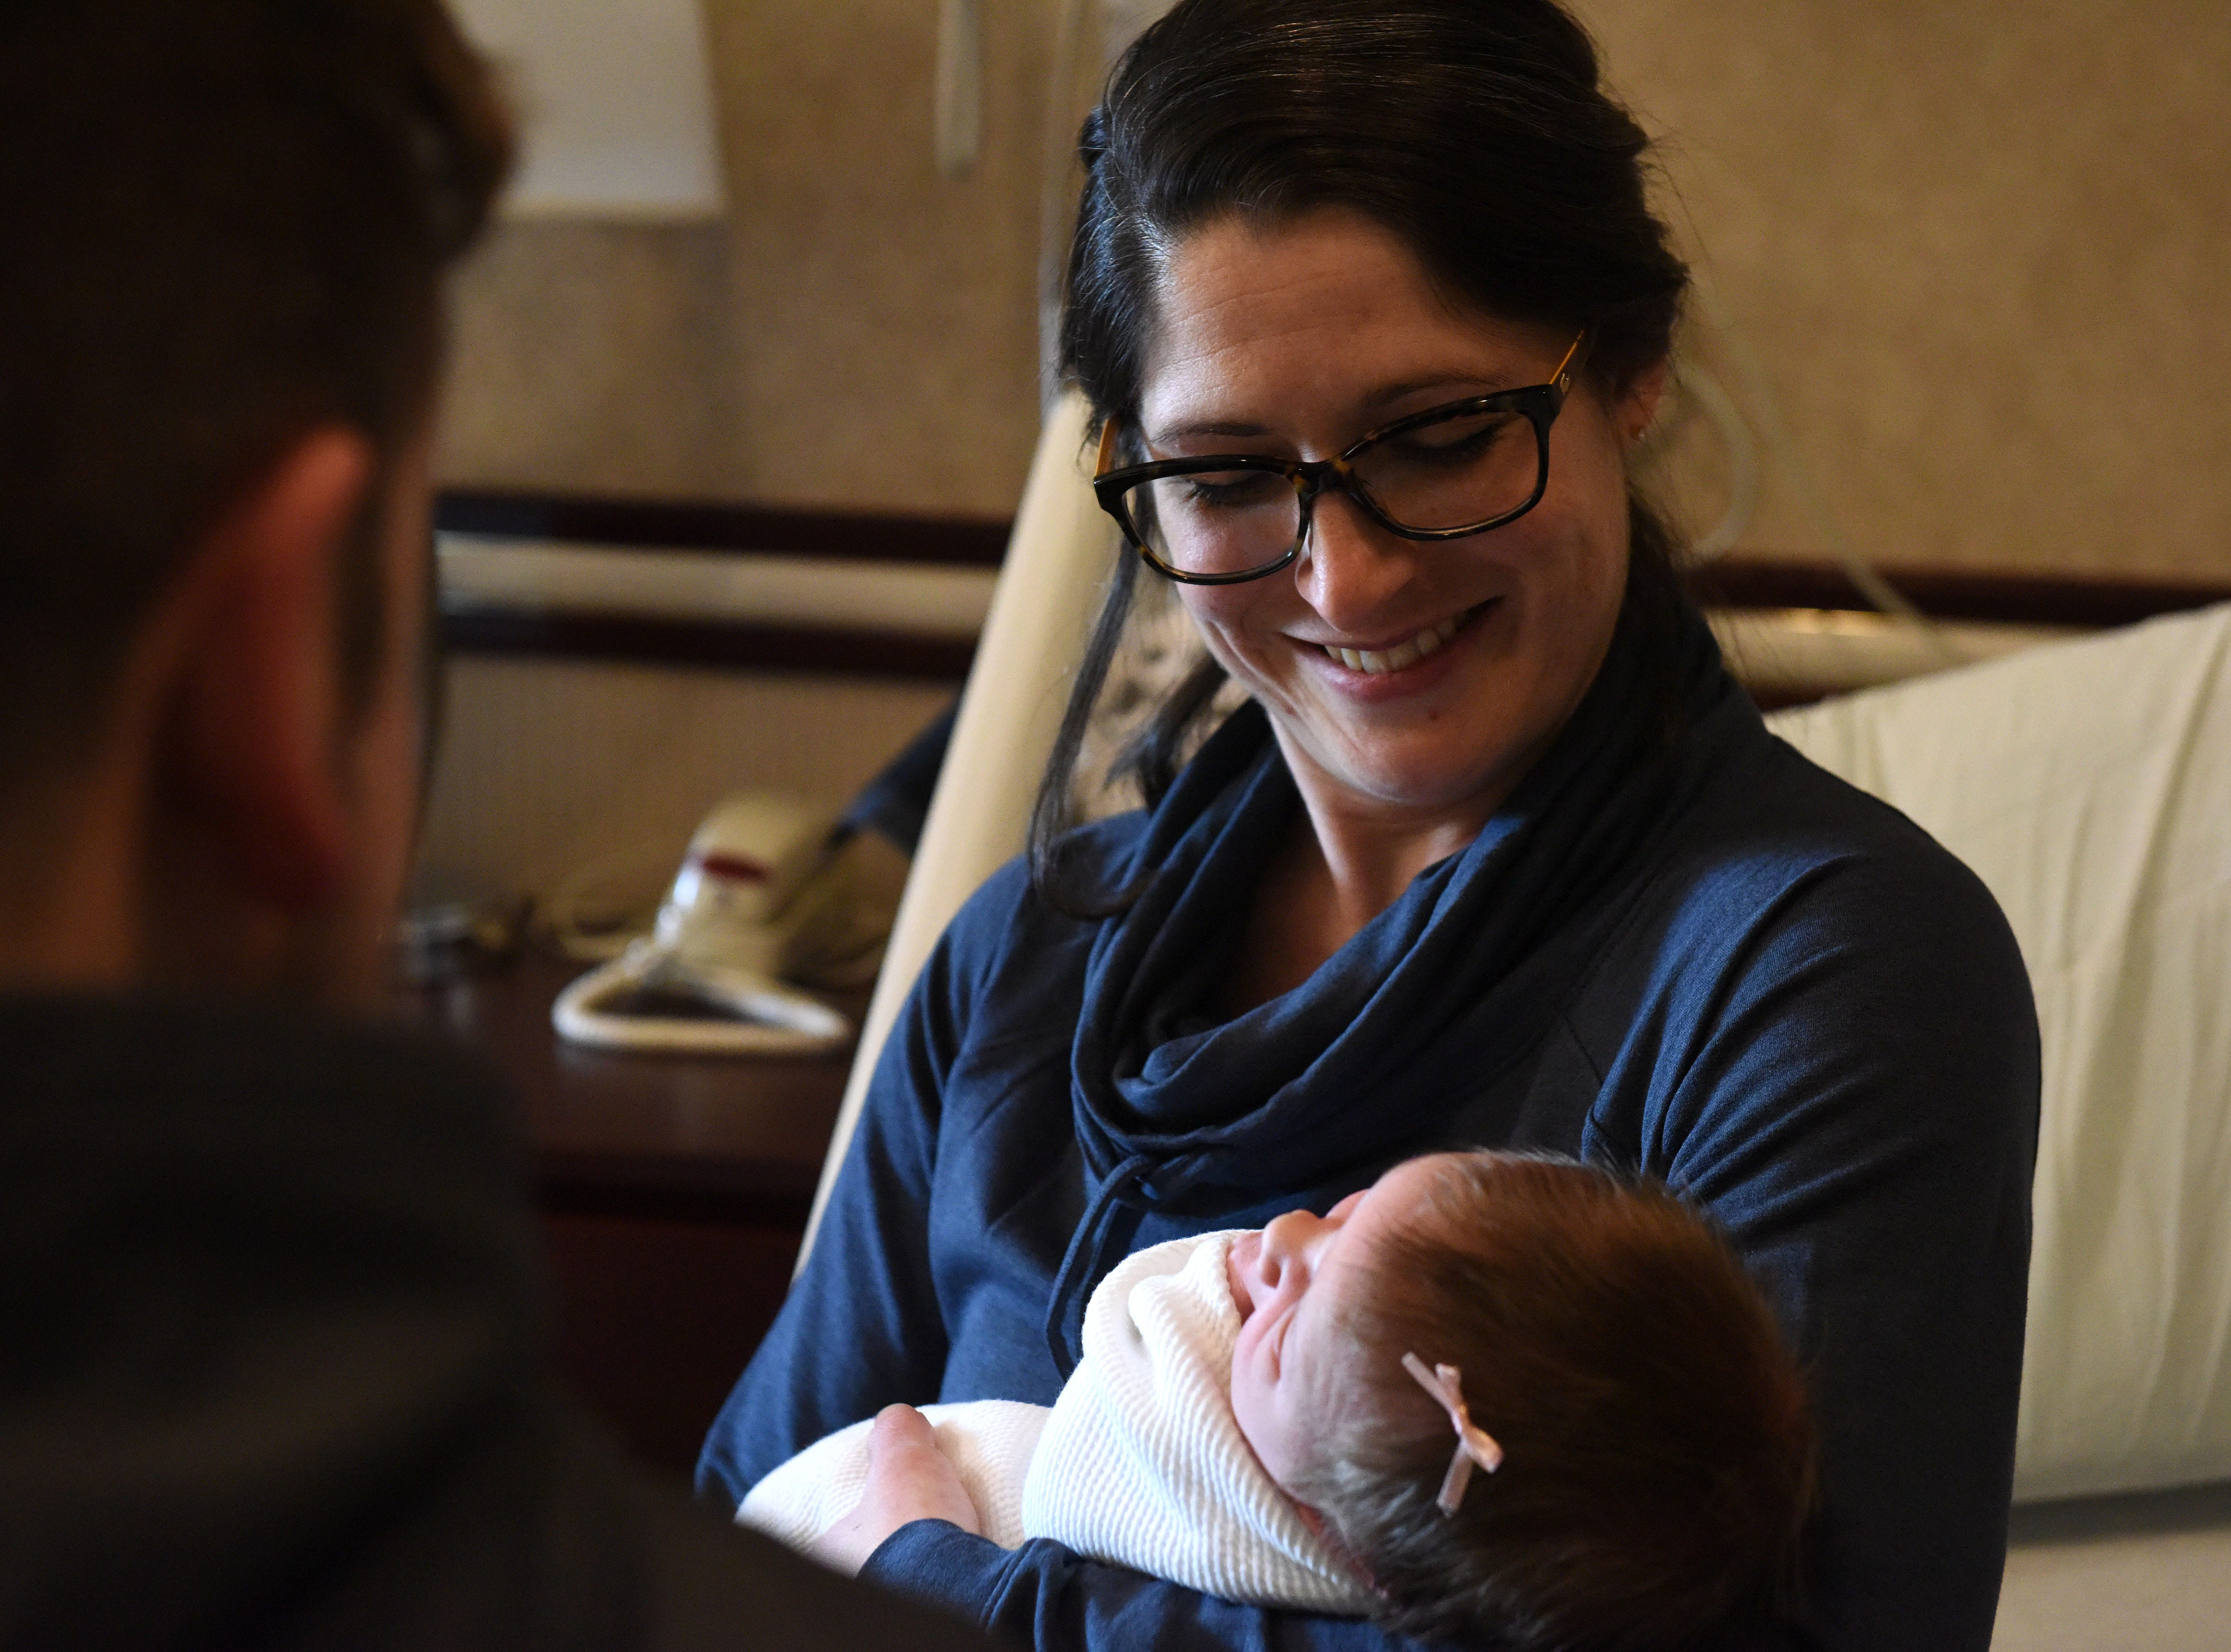 Ashley Bohlen holds her new daughter Lauren Louise Bohlen, Tuesday, Jan. 1, 2019 at Sanford Health in Sioux Falls, S.D. Lauren was the first baby born at Sanford in 2019.